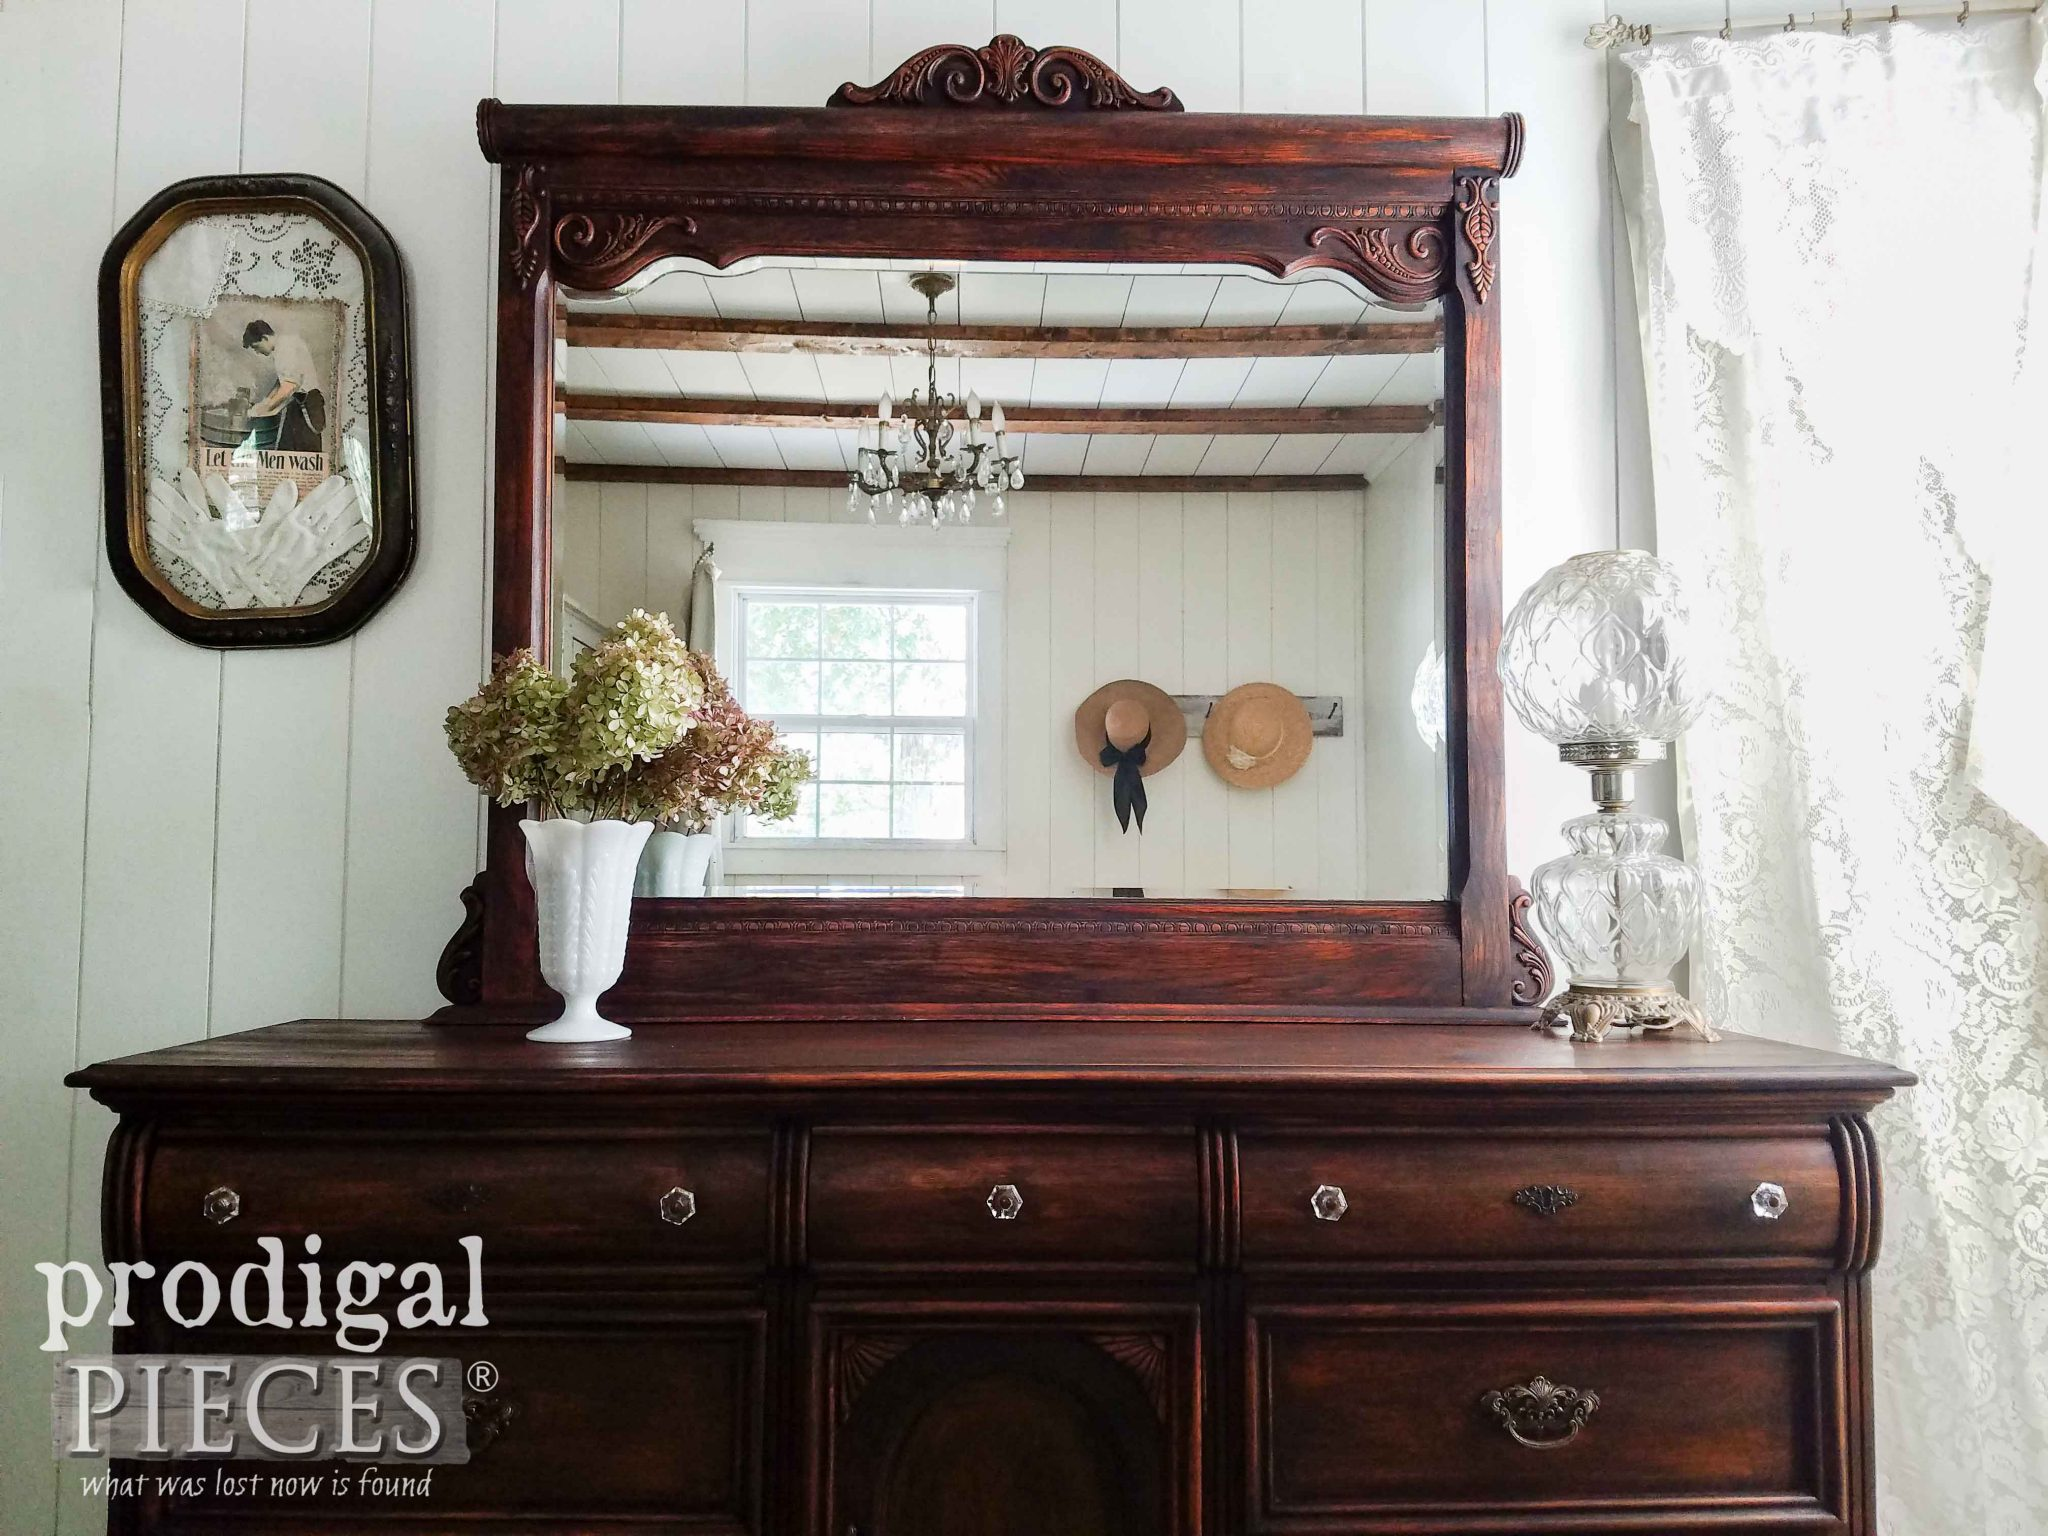 Mirrored Lexington Dresser gets New Look by Prodigal Pieces | prodigalpieces.com